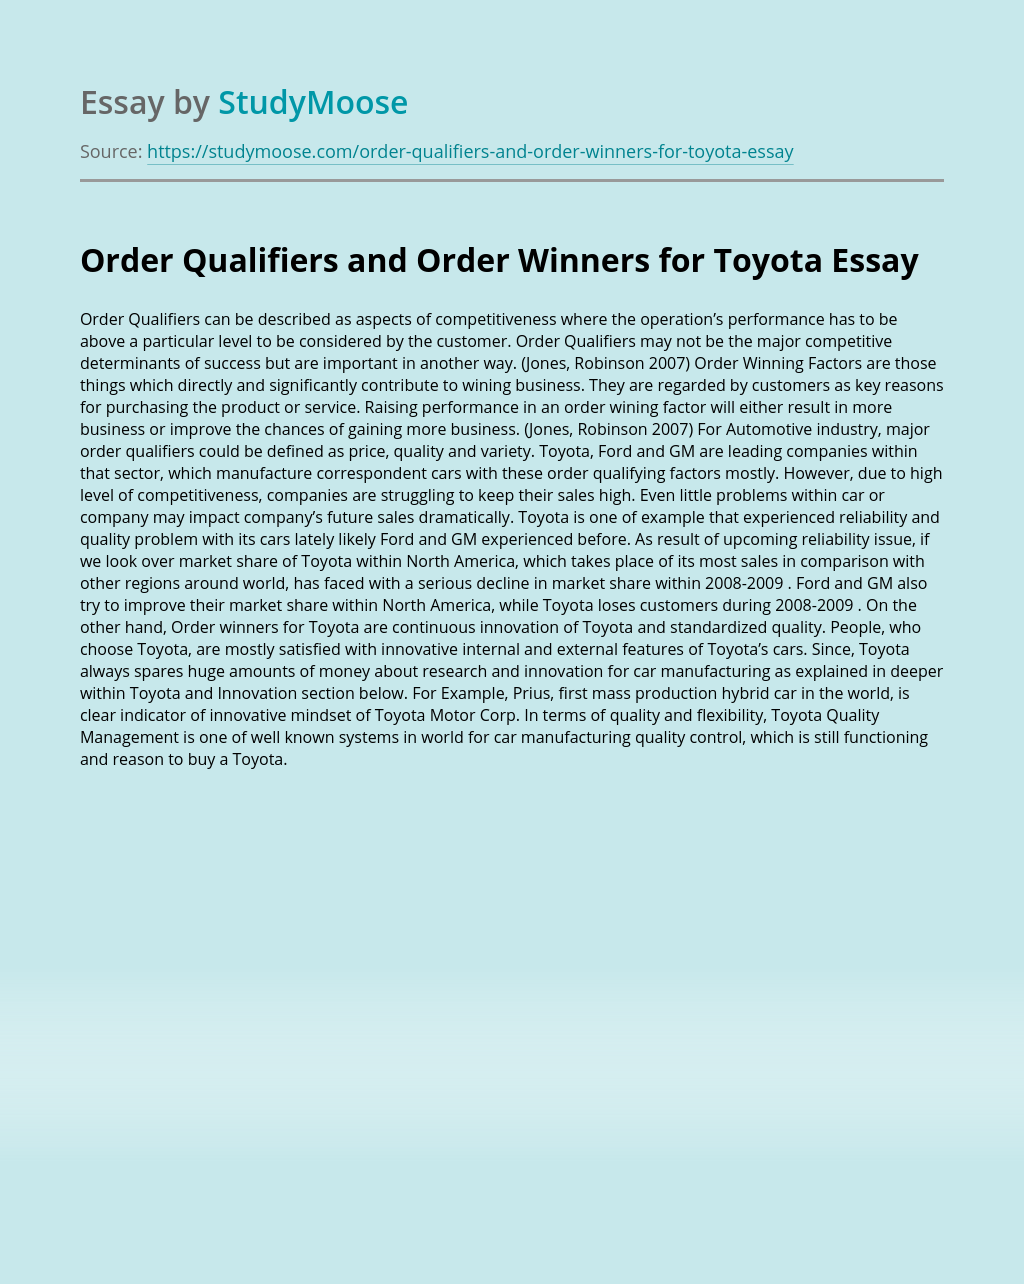 Order Qualifiers and Order Winners for Toyota